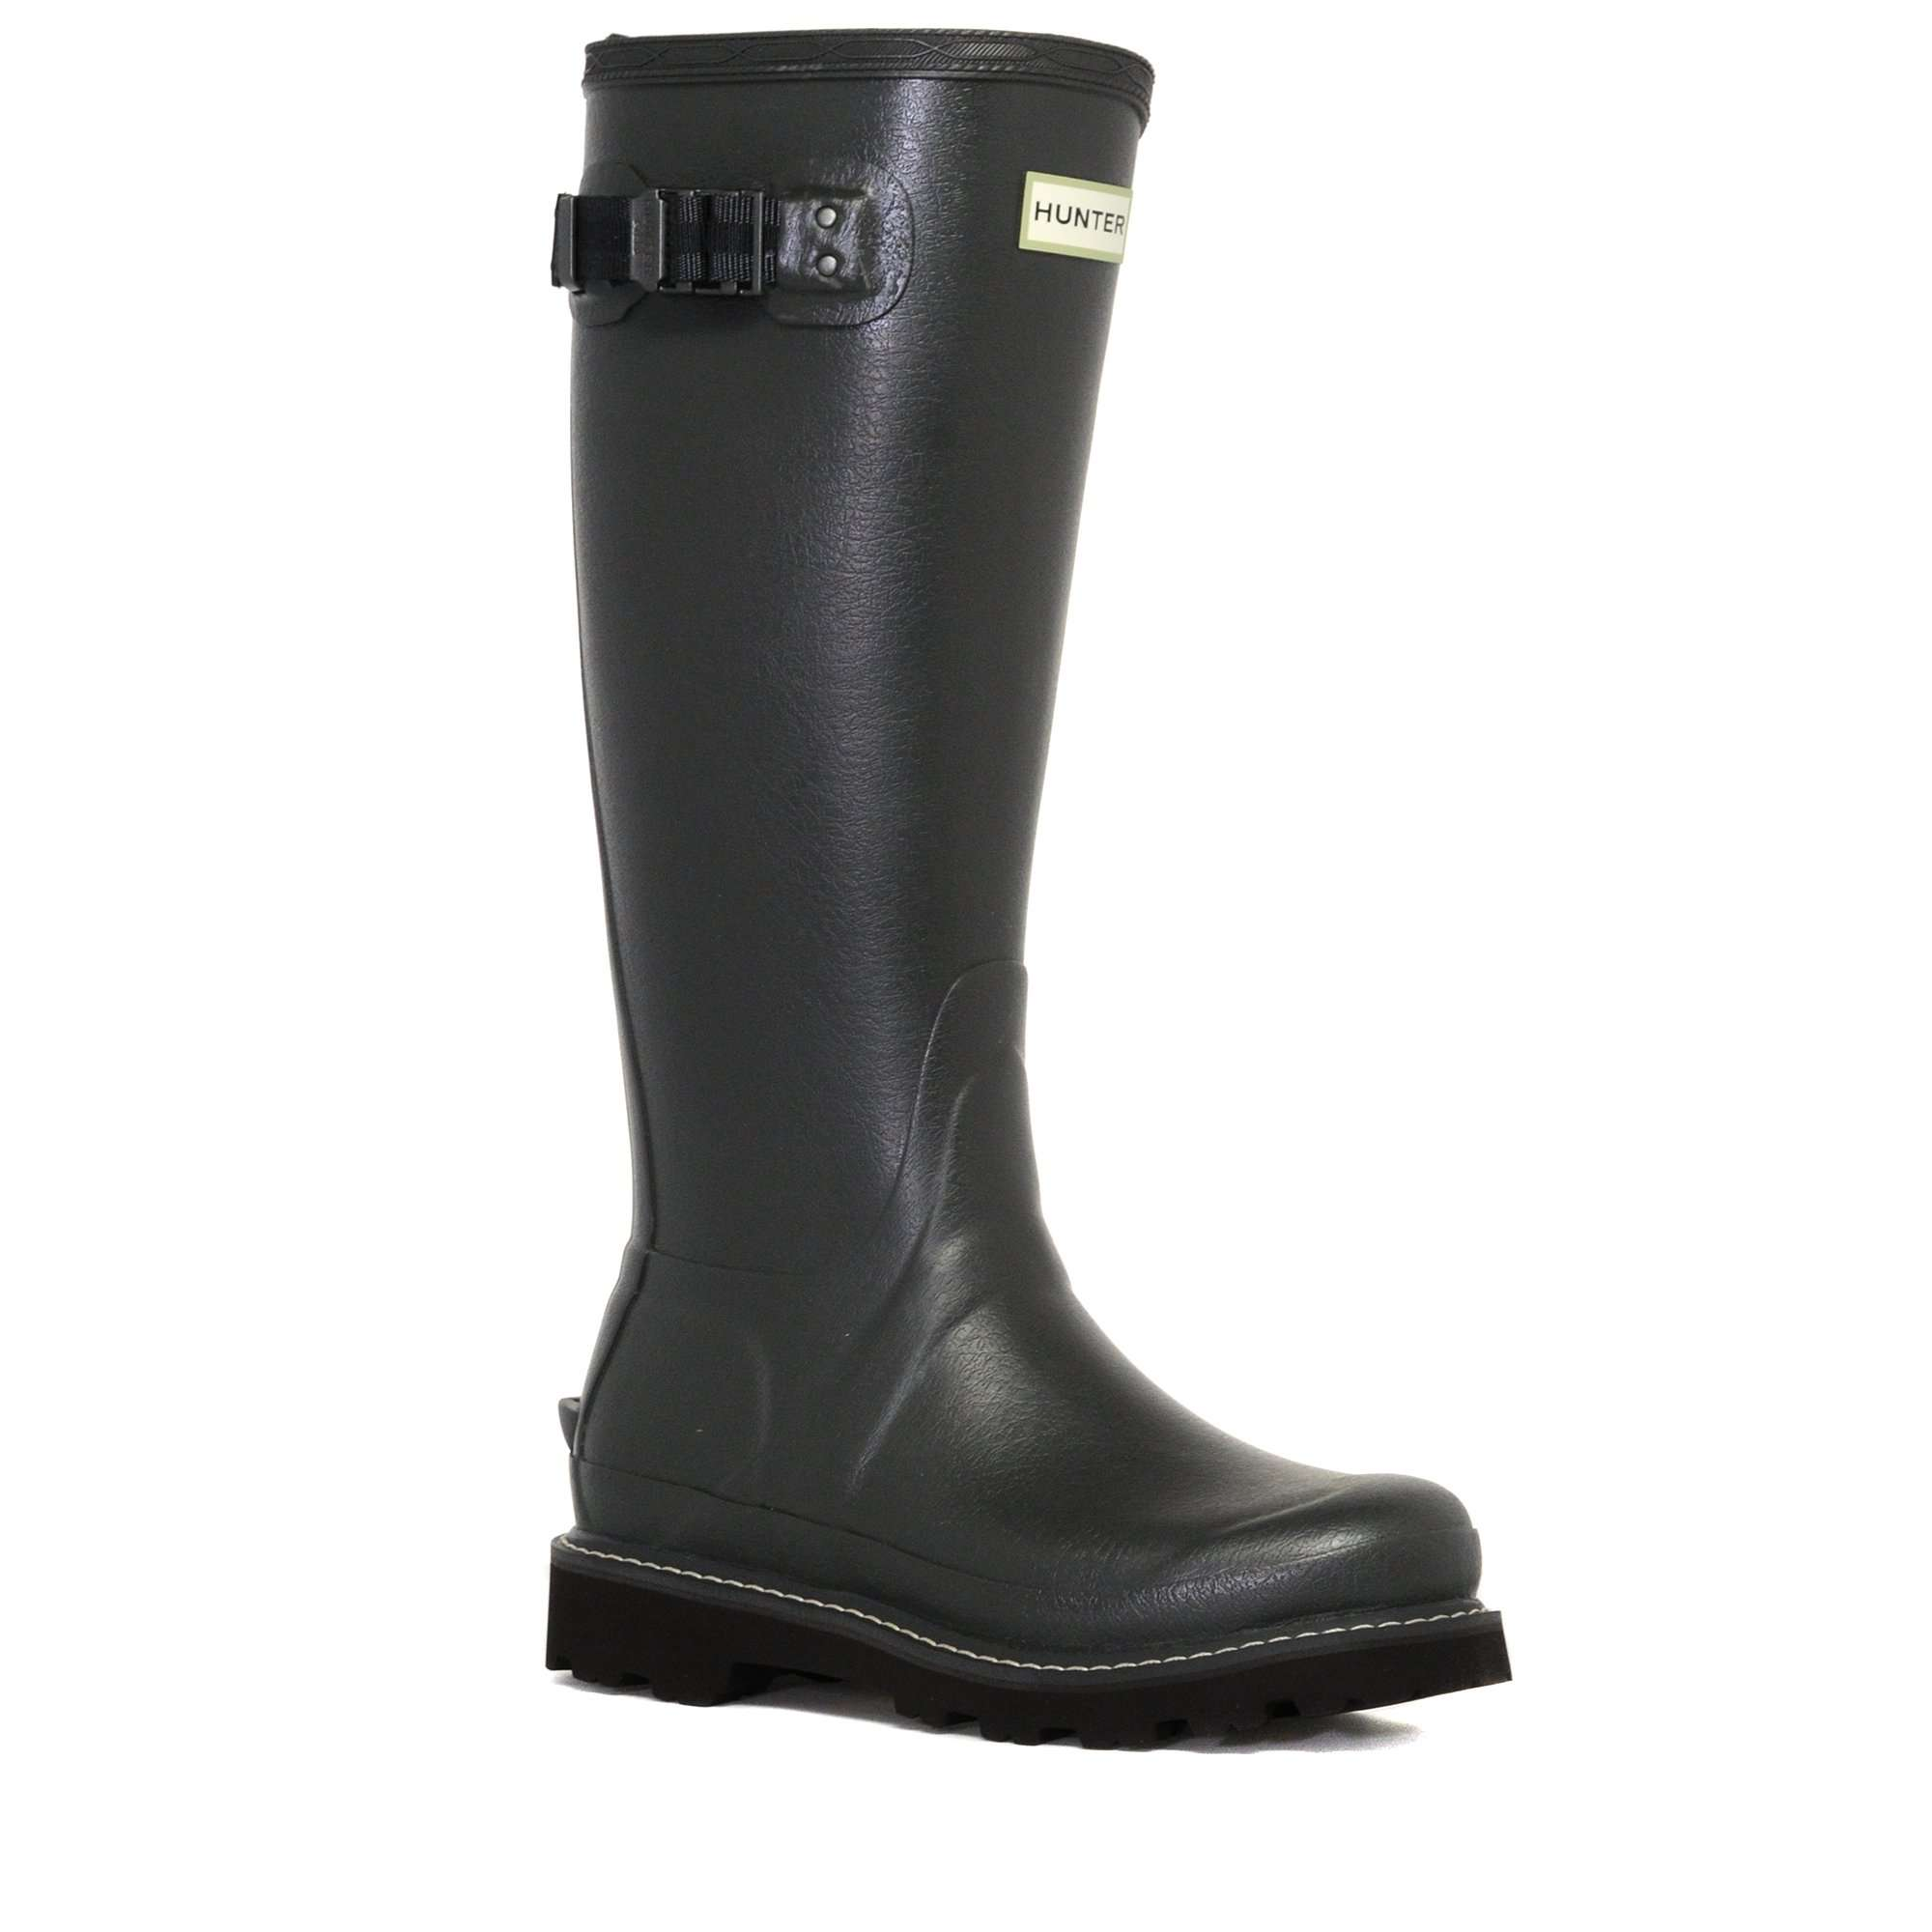 HUNTER Women's Balmoral Wellingtons Slate